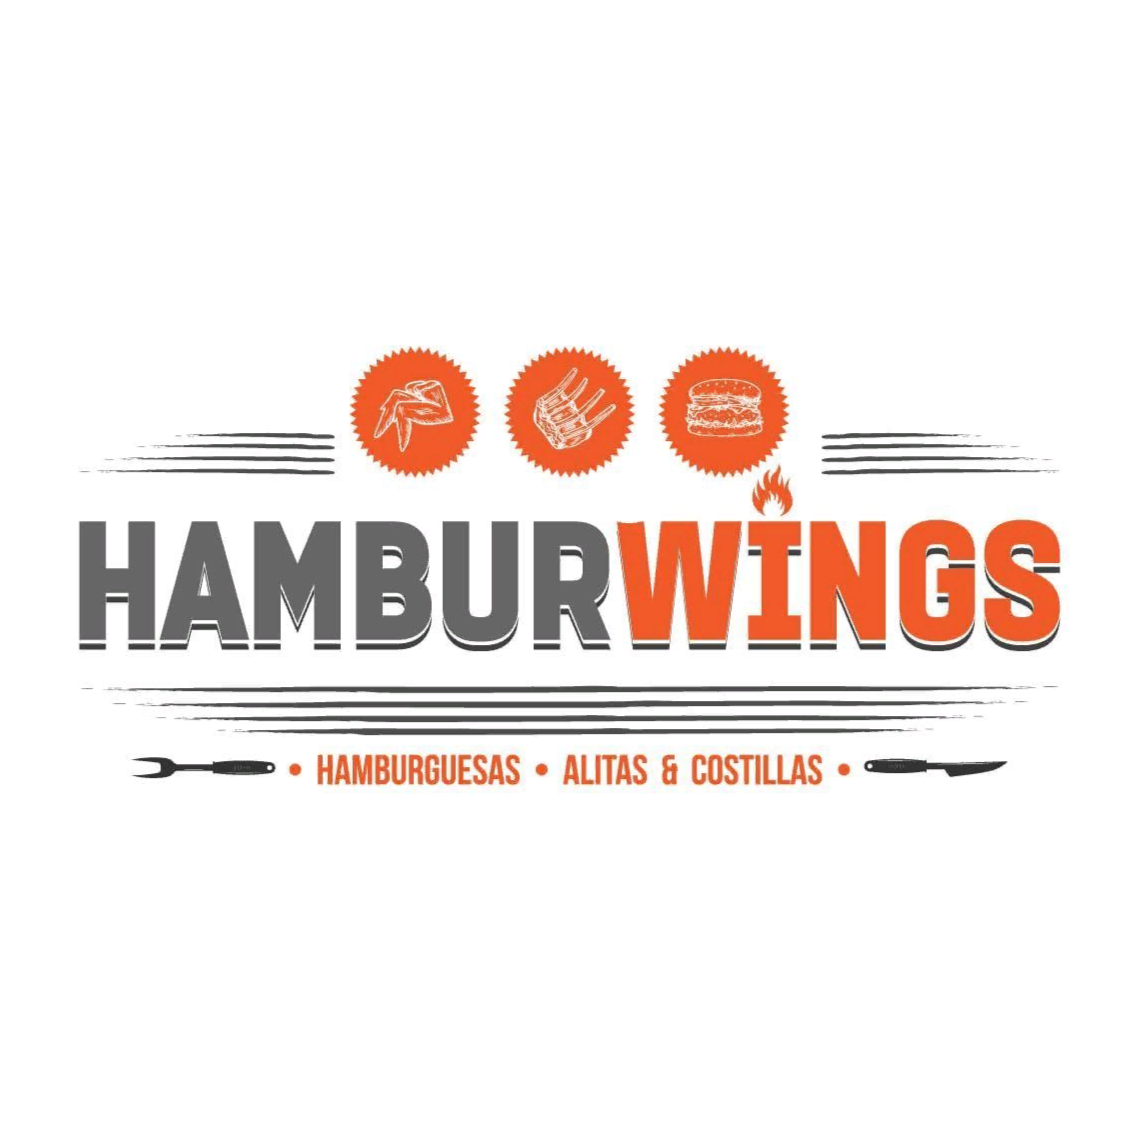 HamburWings